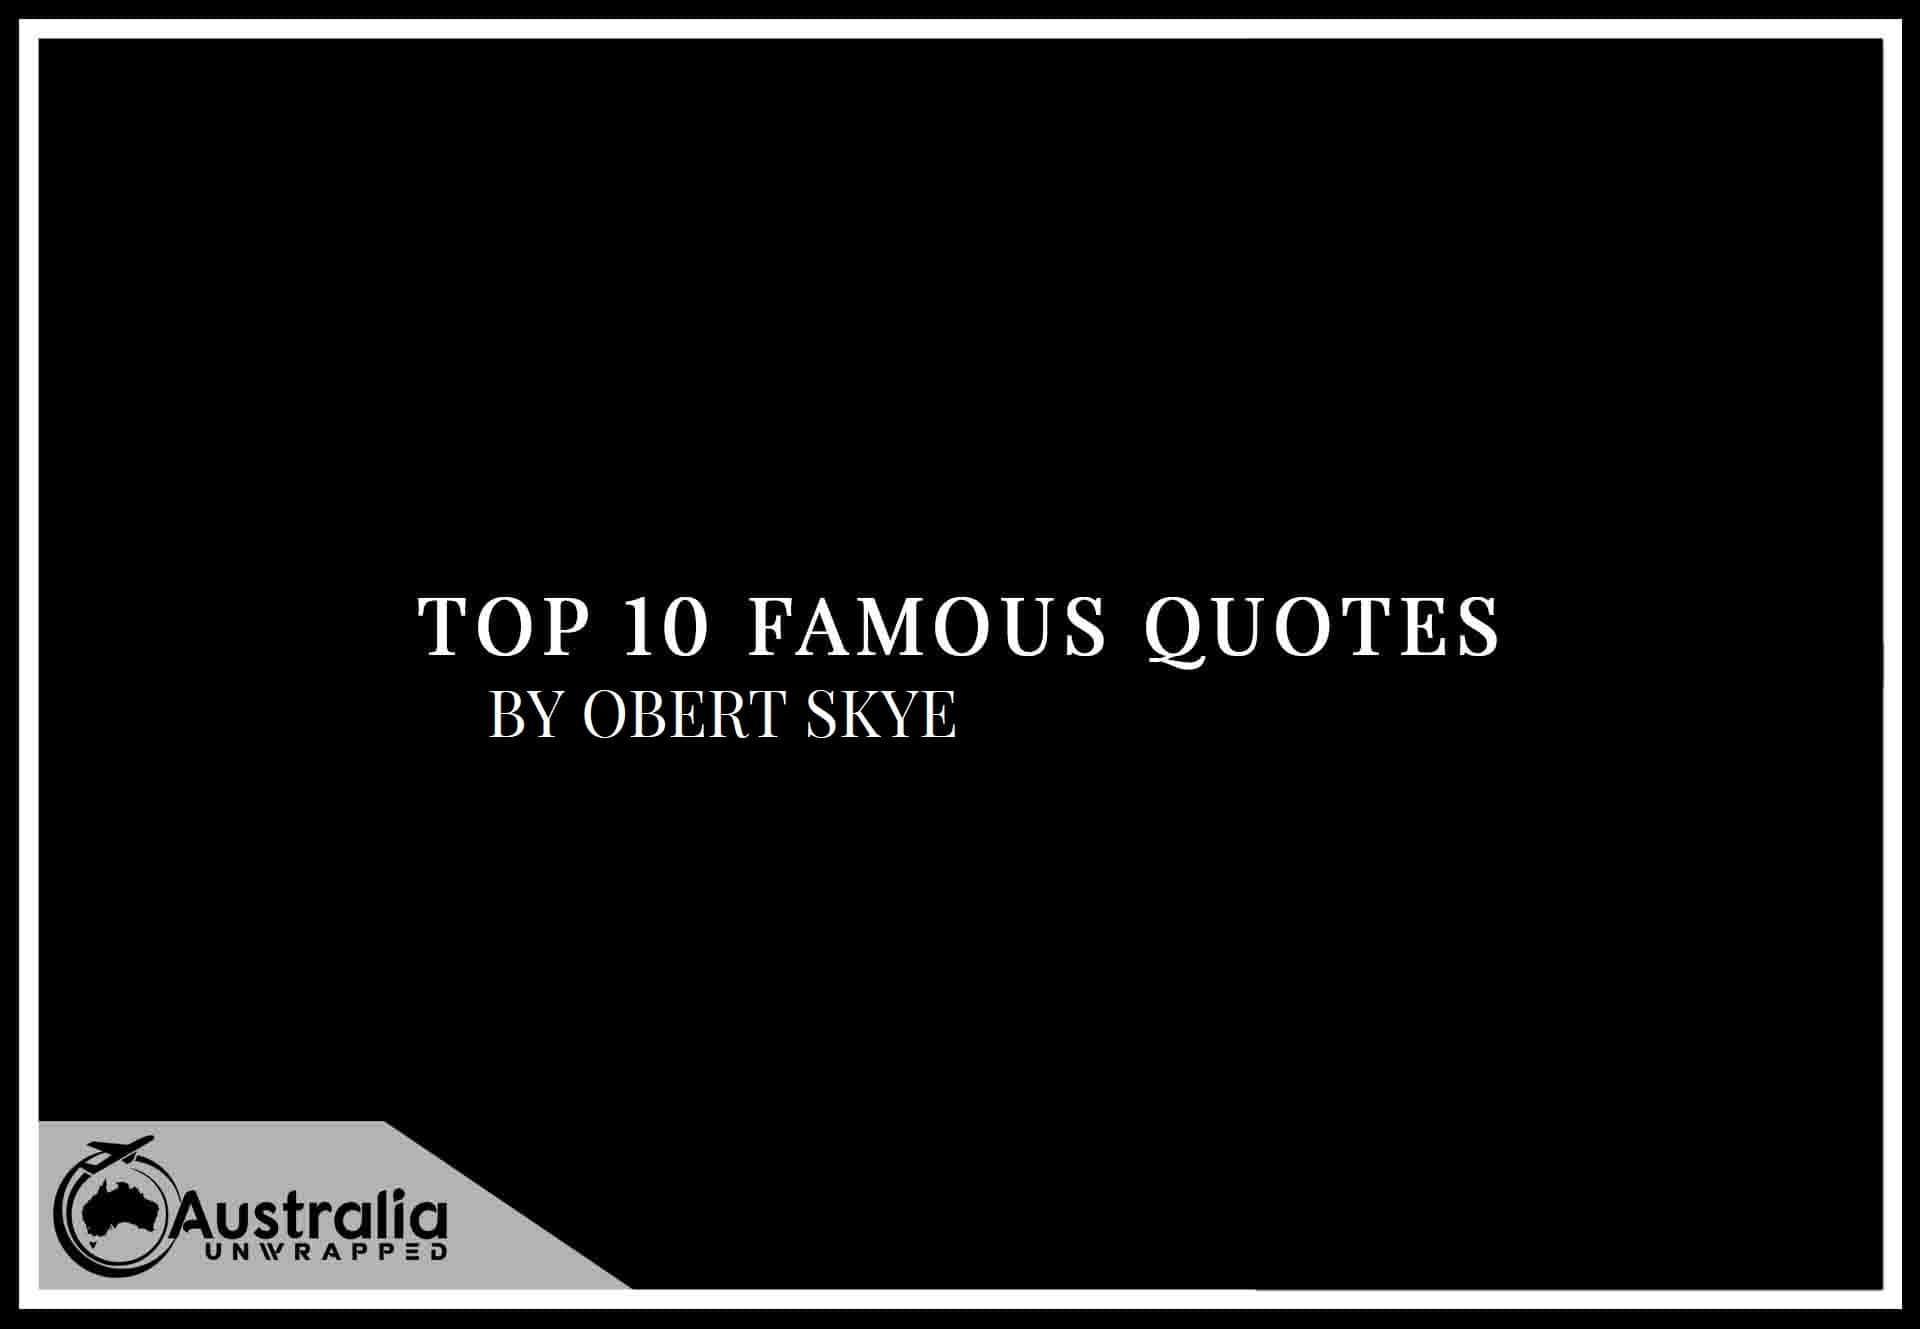 Top 10 Famous Quotes by Author Obert Skye